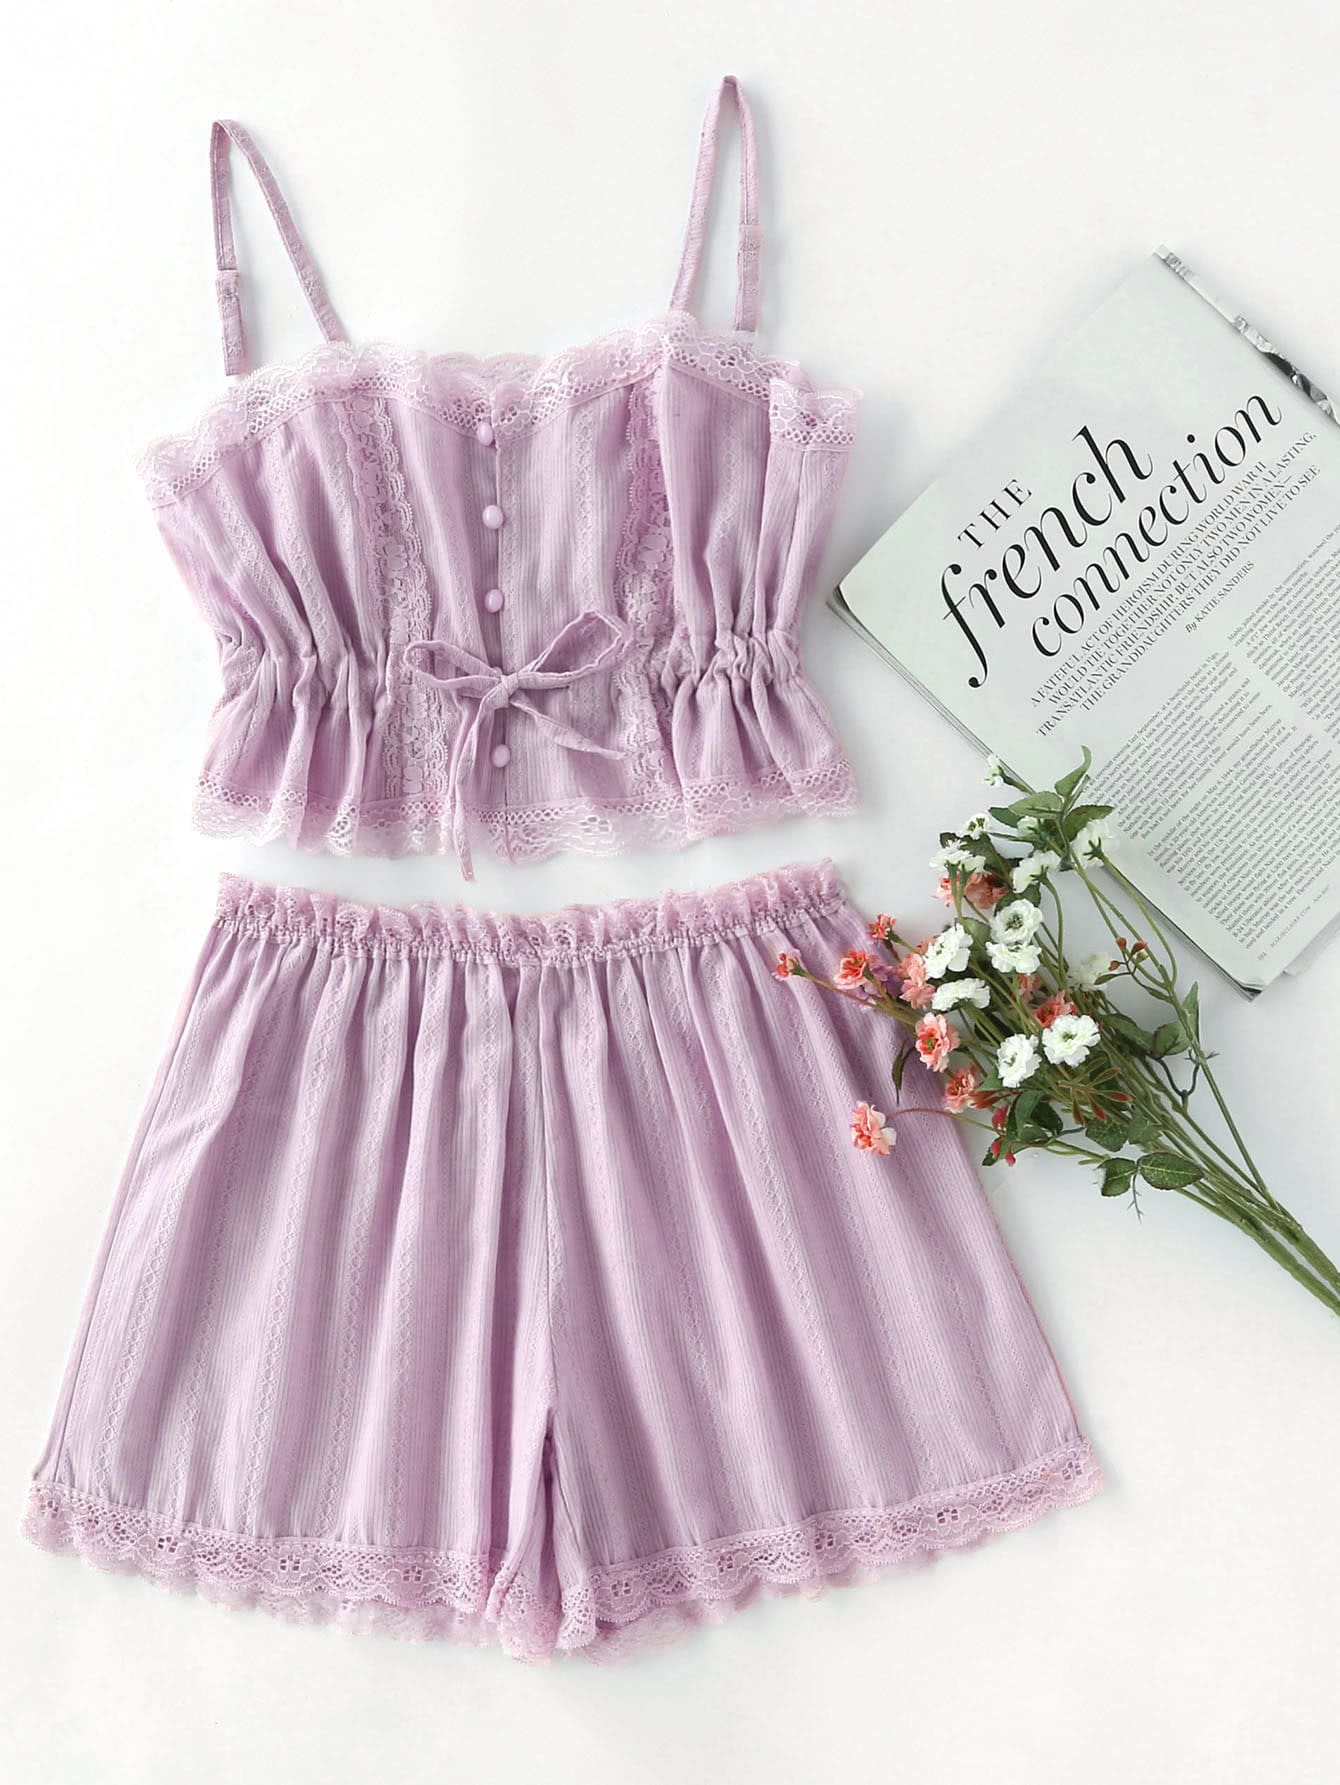 Contrast Lace Cami With Shorts Pajama Set contrast lace cami with shorts pajama set